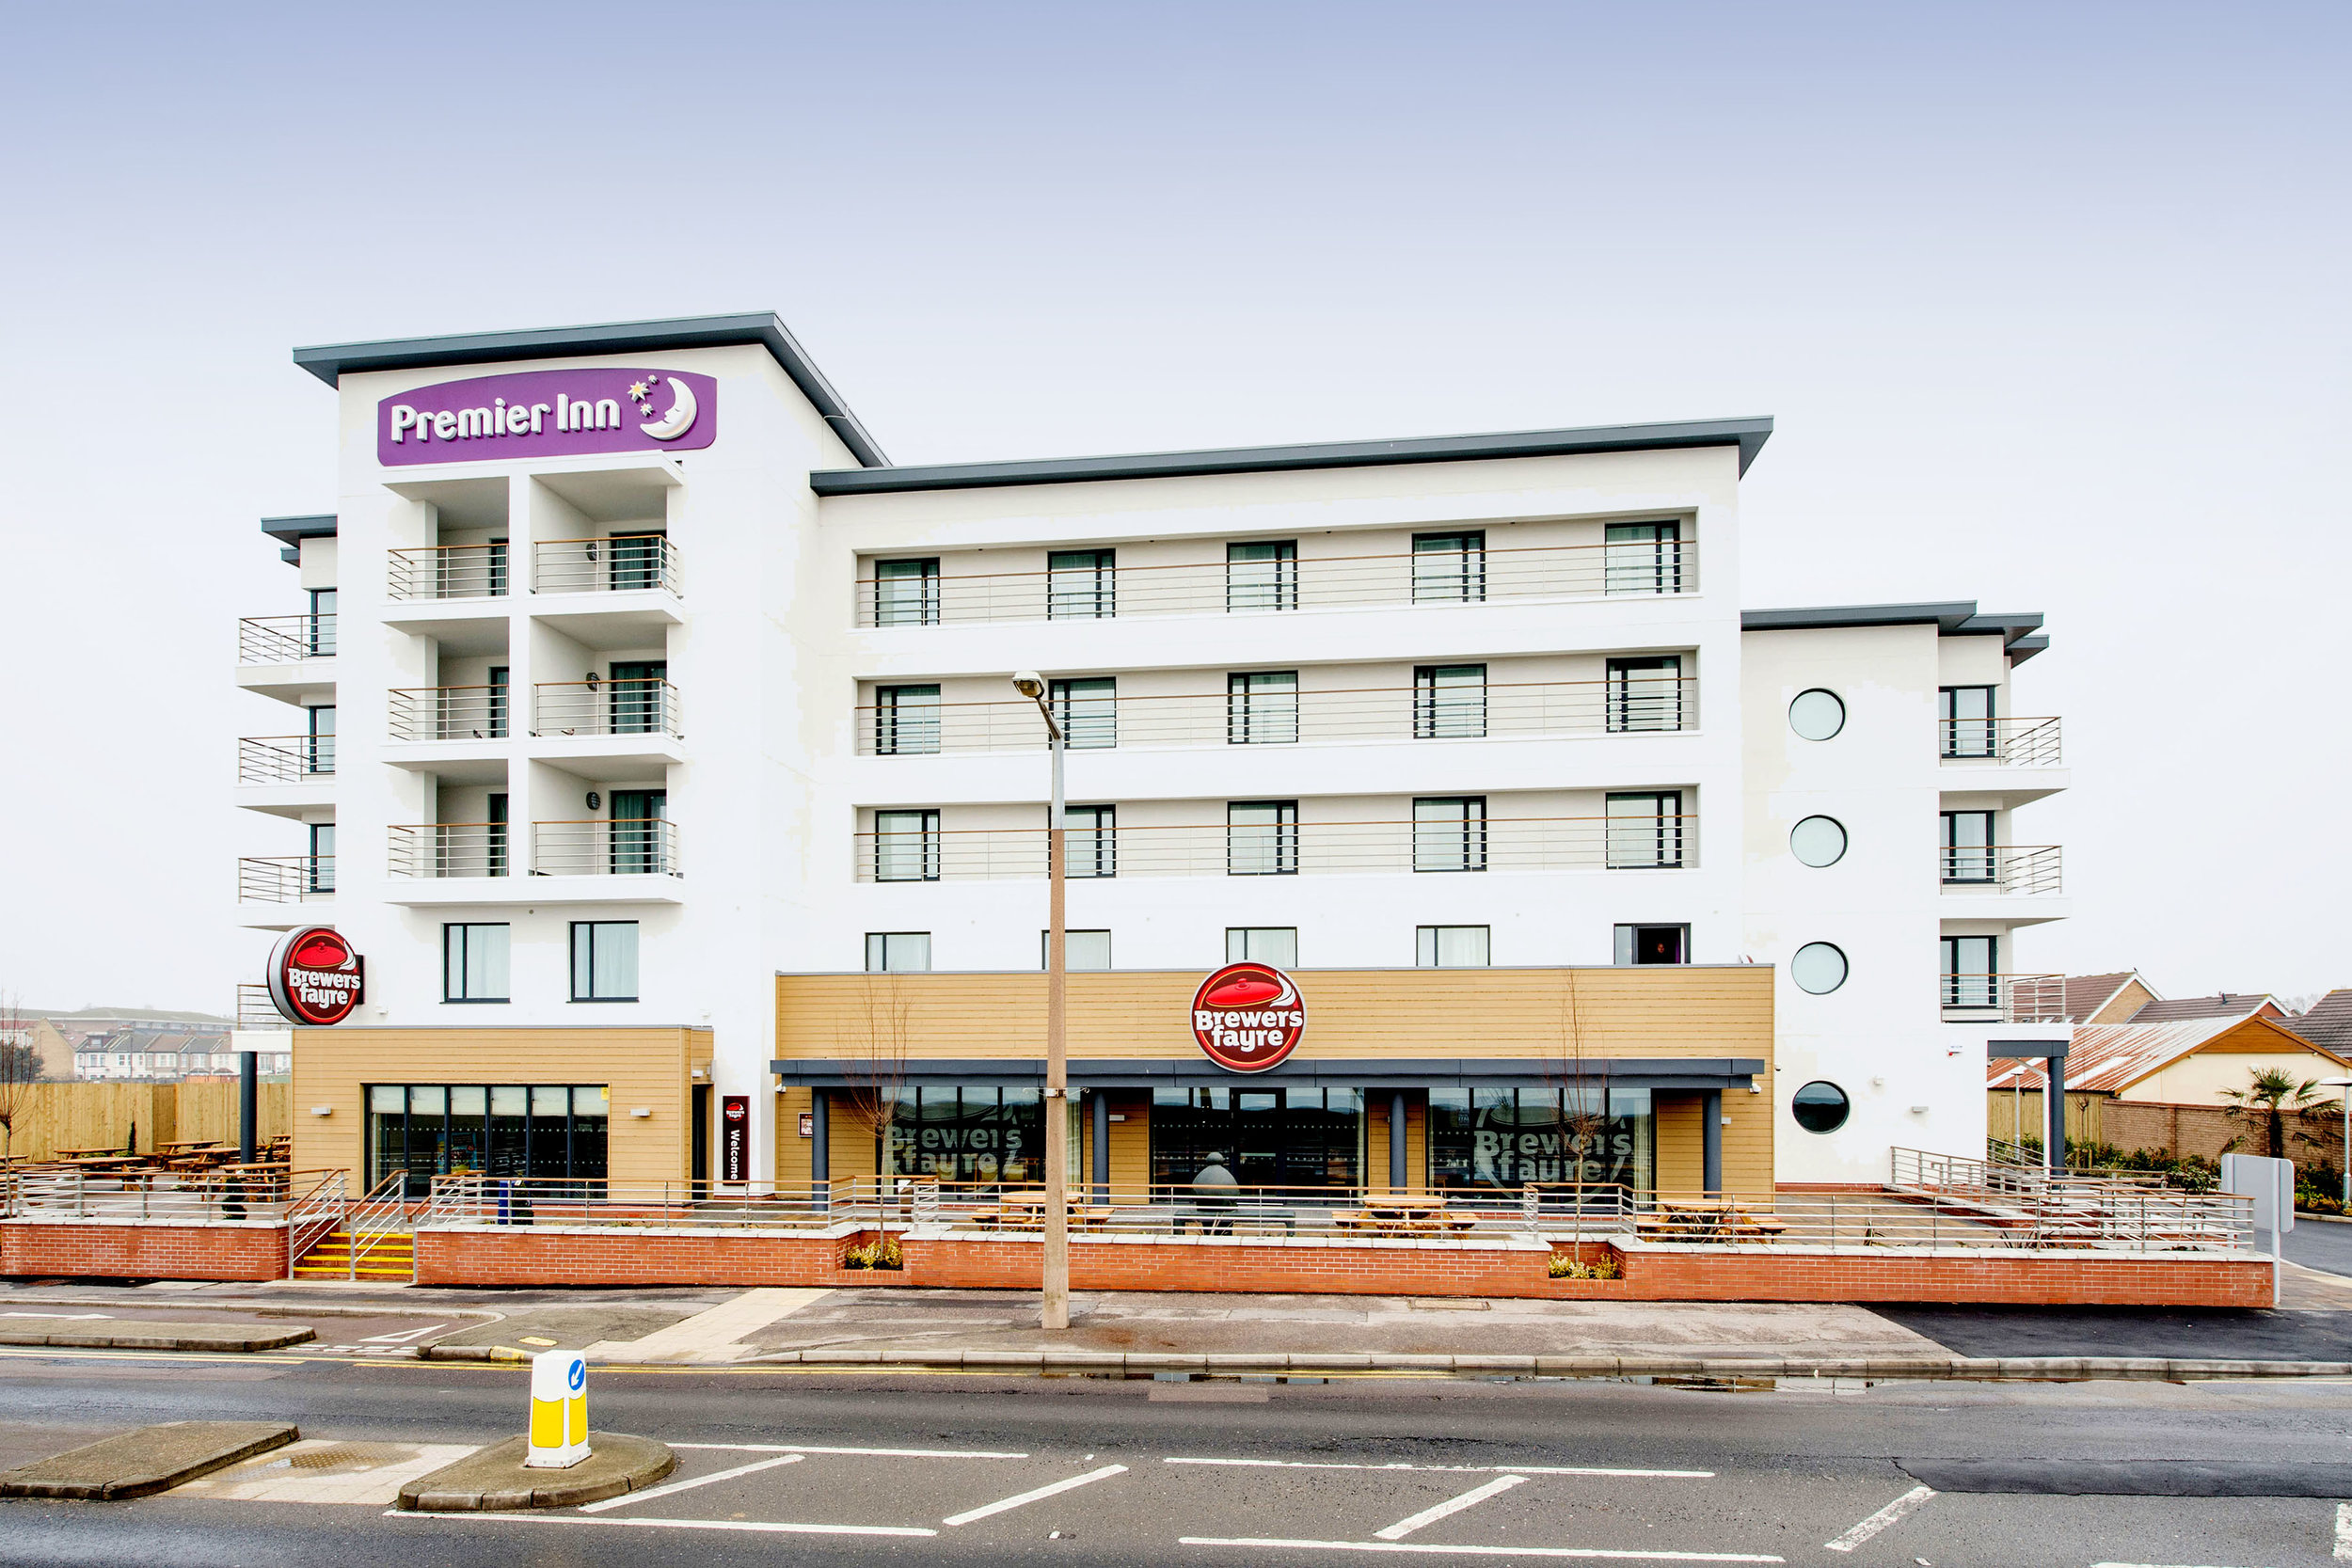 Premier Inn: Southend-on-Sea